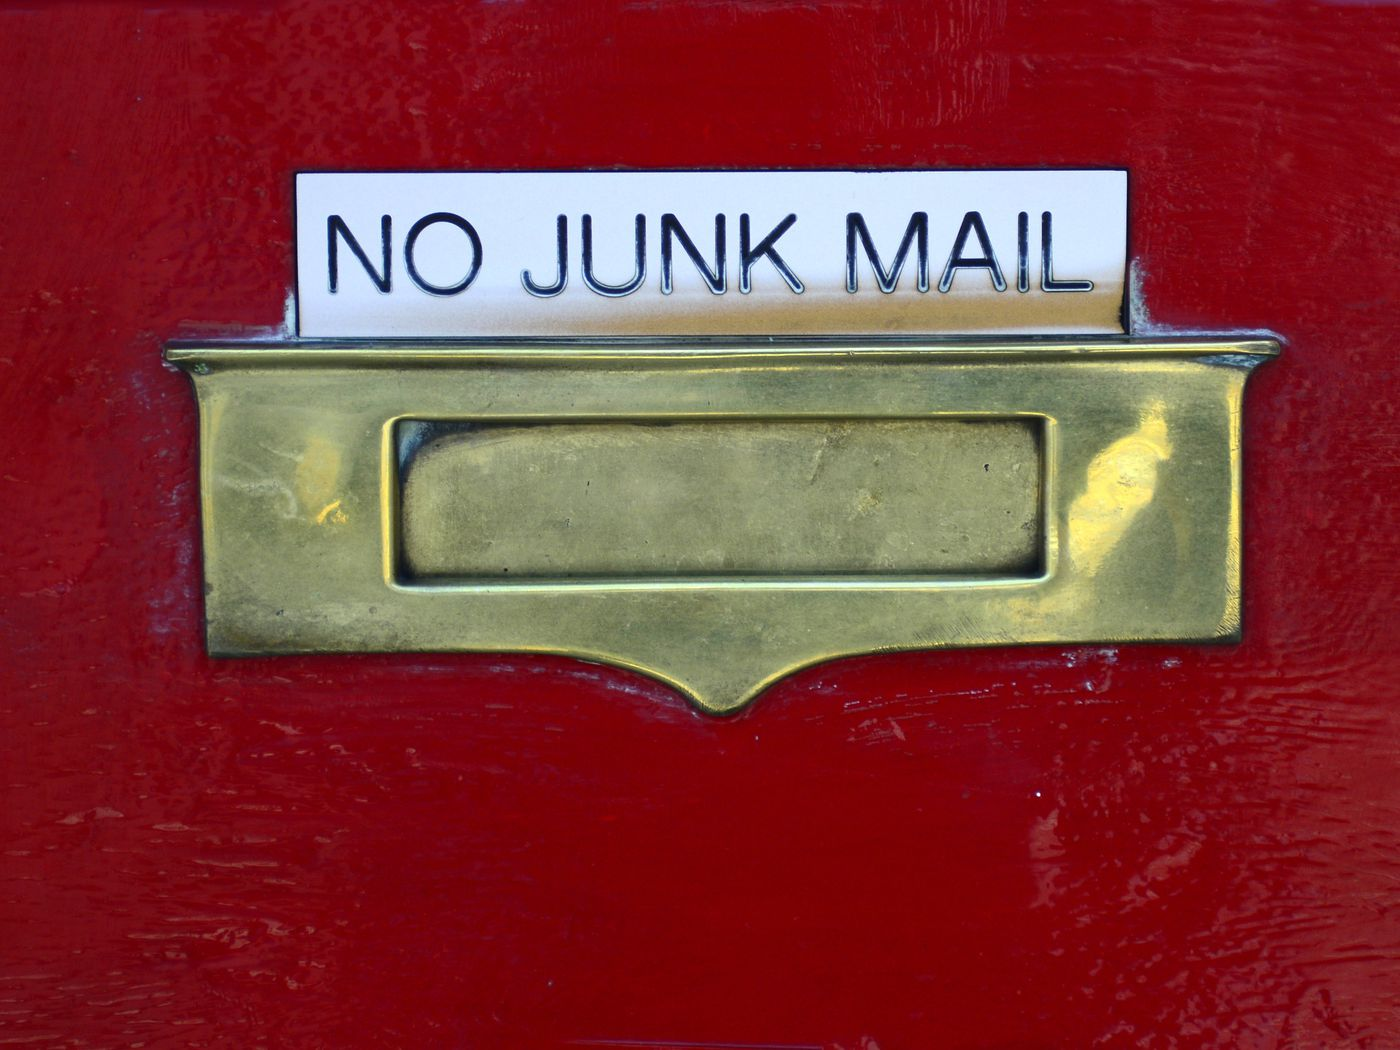 How to stop Spectrum junk mail and spam calls - The Verge